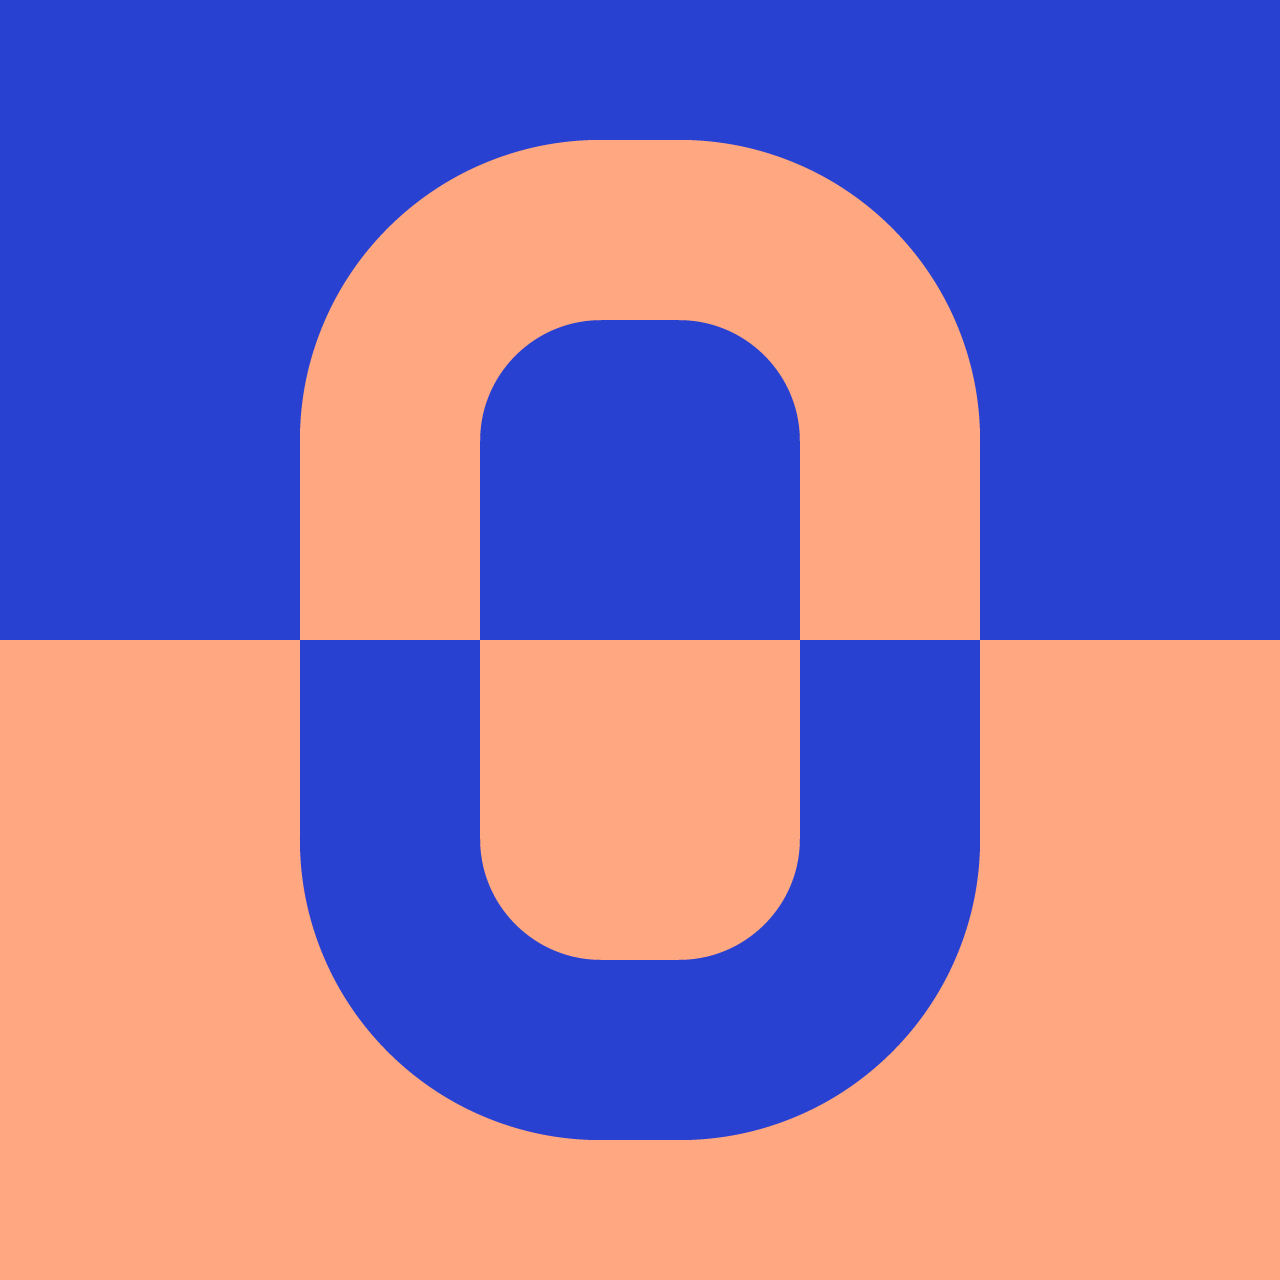 My 0 submission for 36 Days of Type